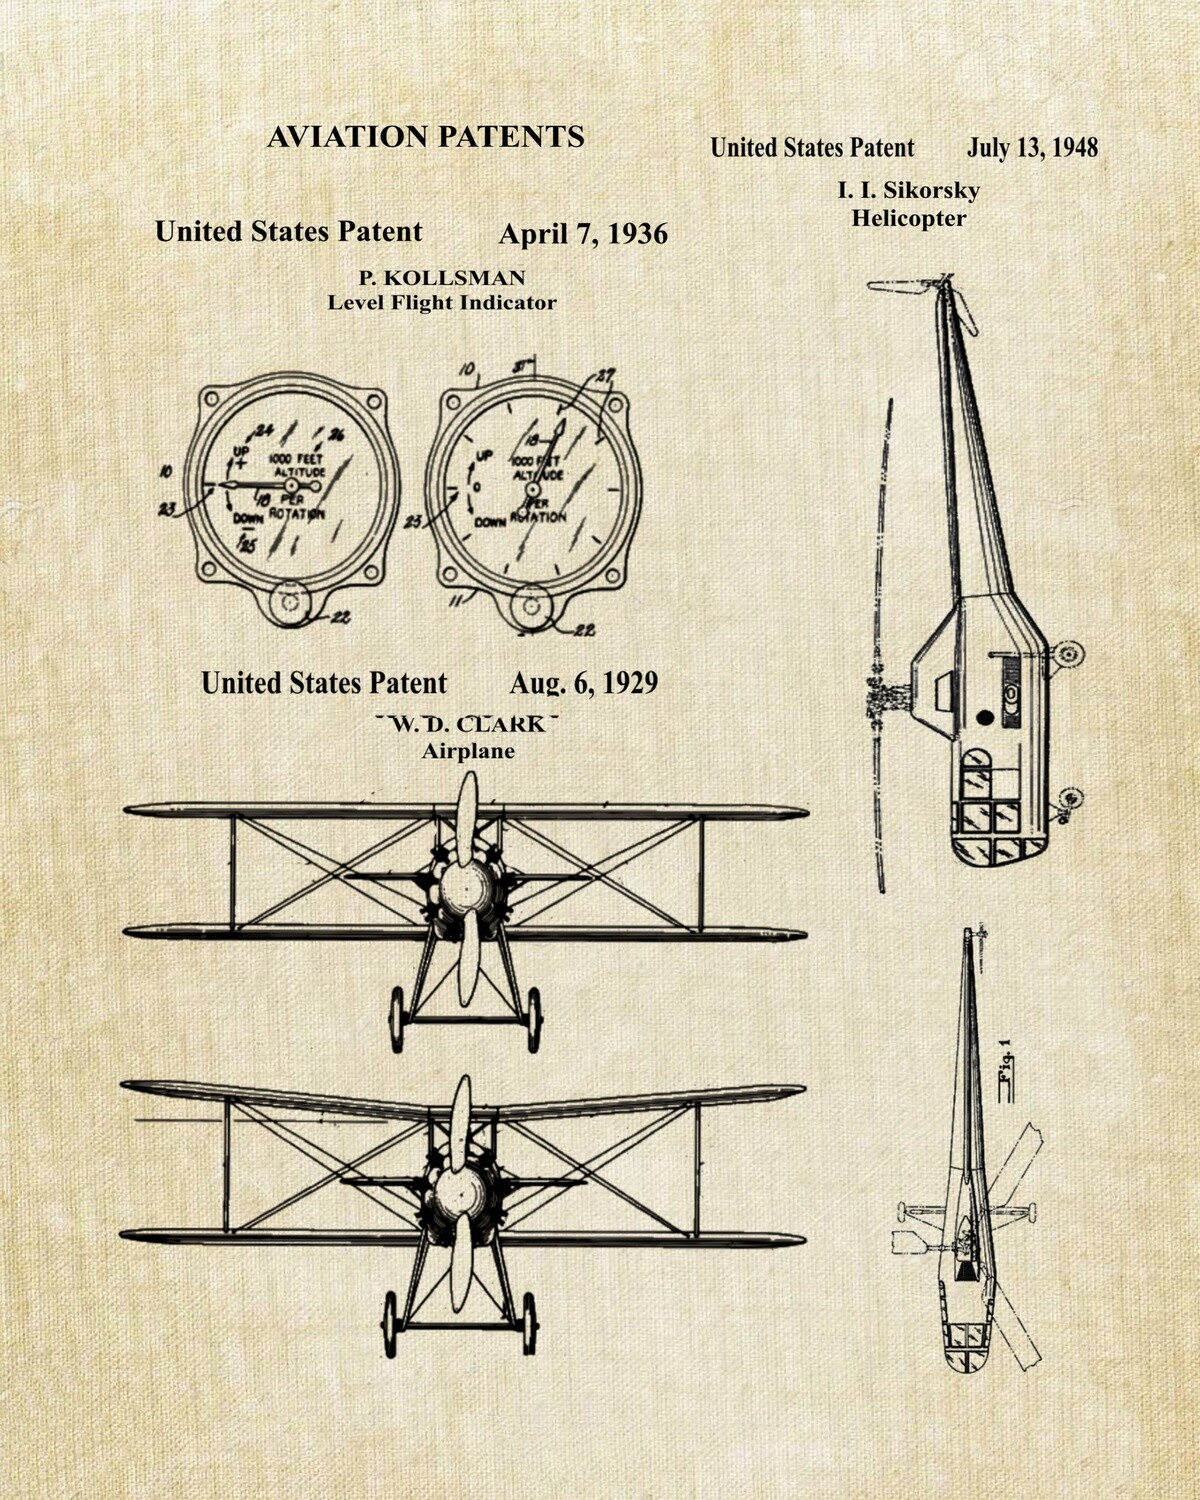 Pilot or Aviation Industry Patent Art Prints Unframed 8x10 - Ready for You to Frame